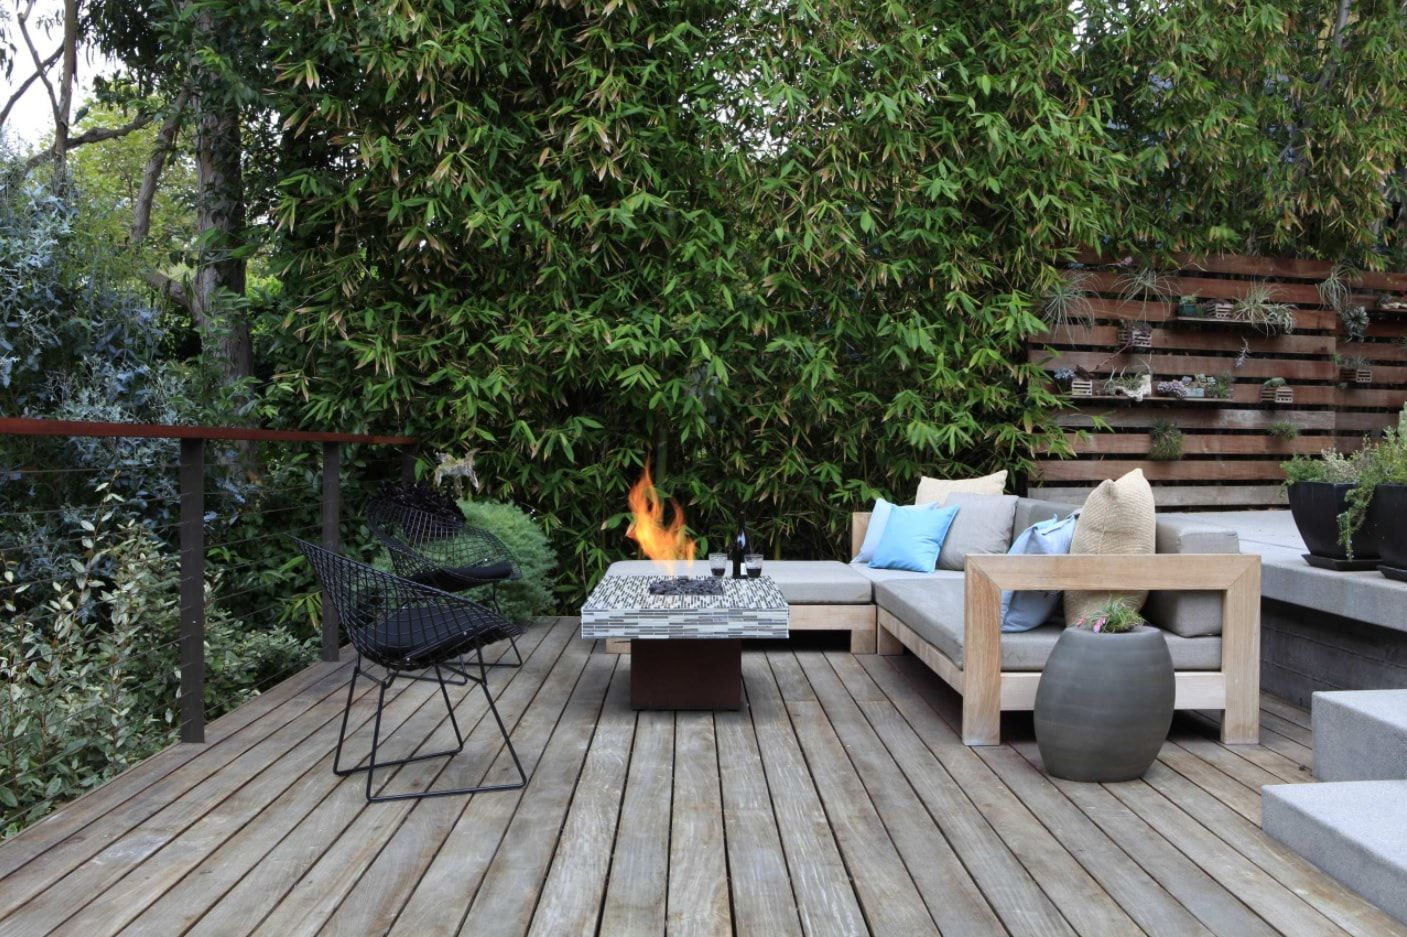 Backyard BBQ zone with gray wooden planked flooring